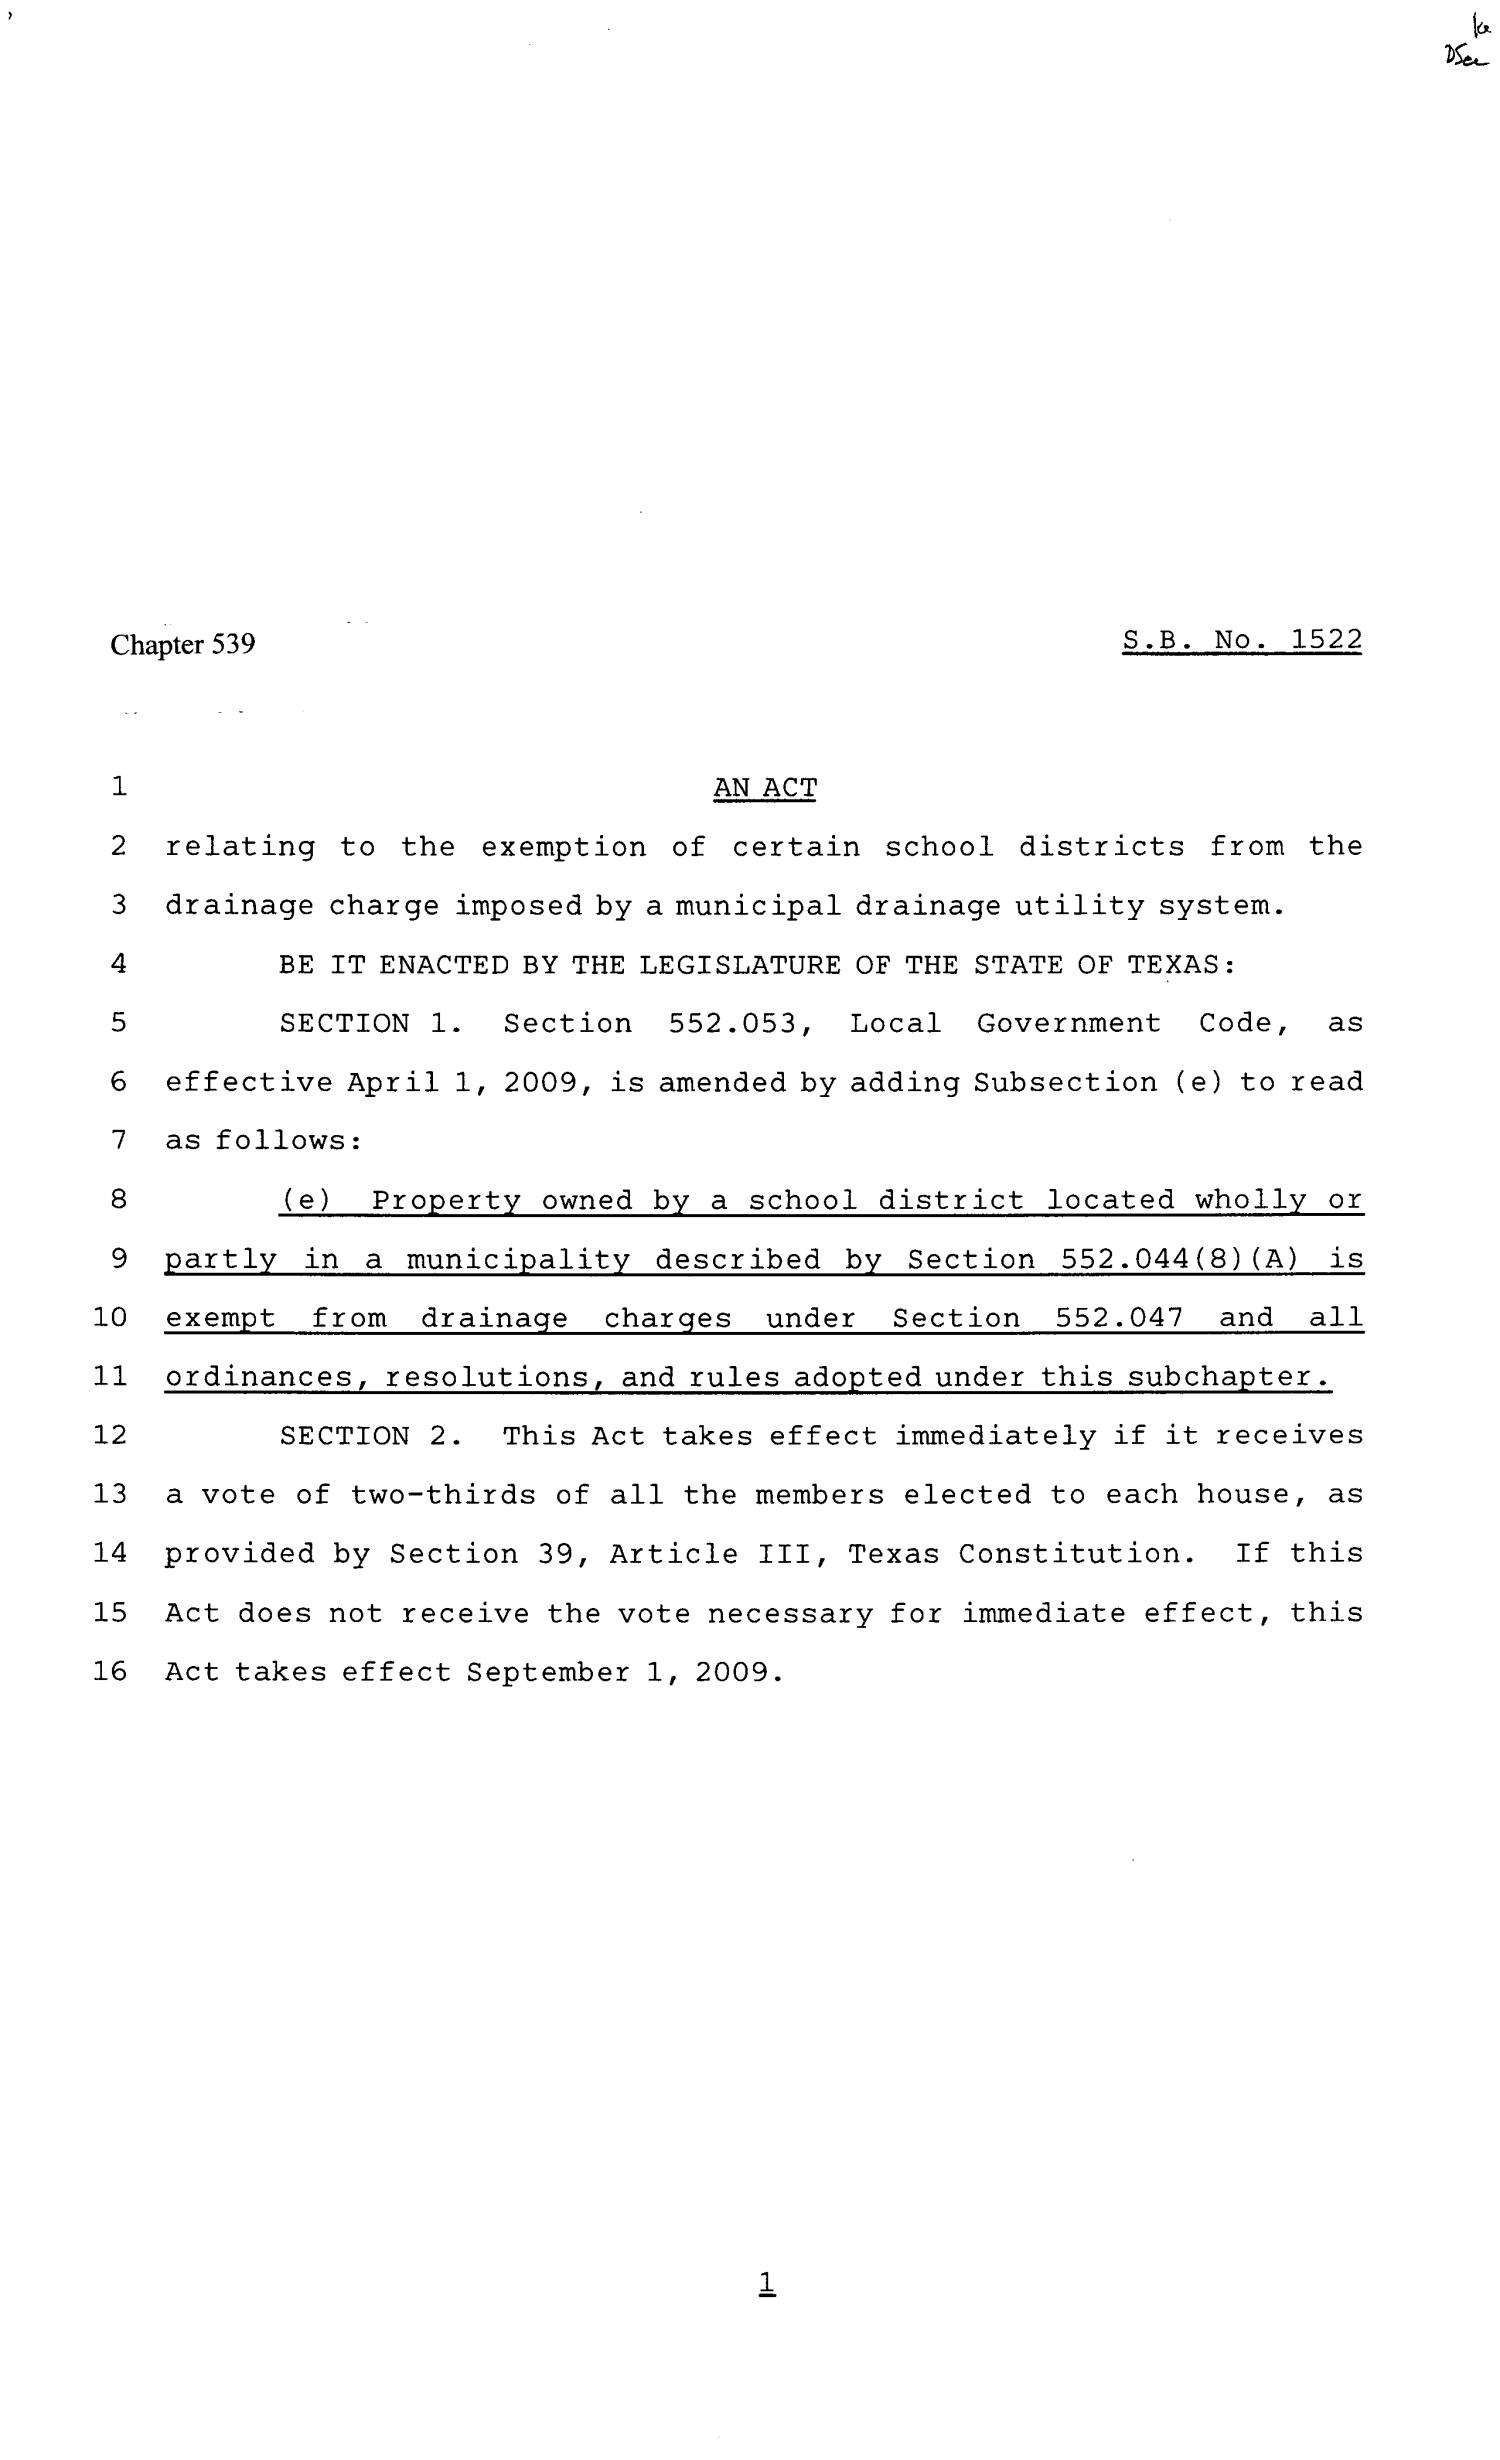 81st Texas Legislature, Senate Bill 1522, Chapter 539                                                                                                      [Sequence #]: 1 of 2